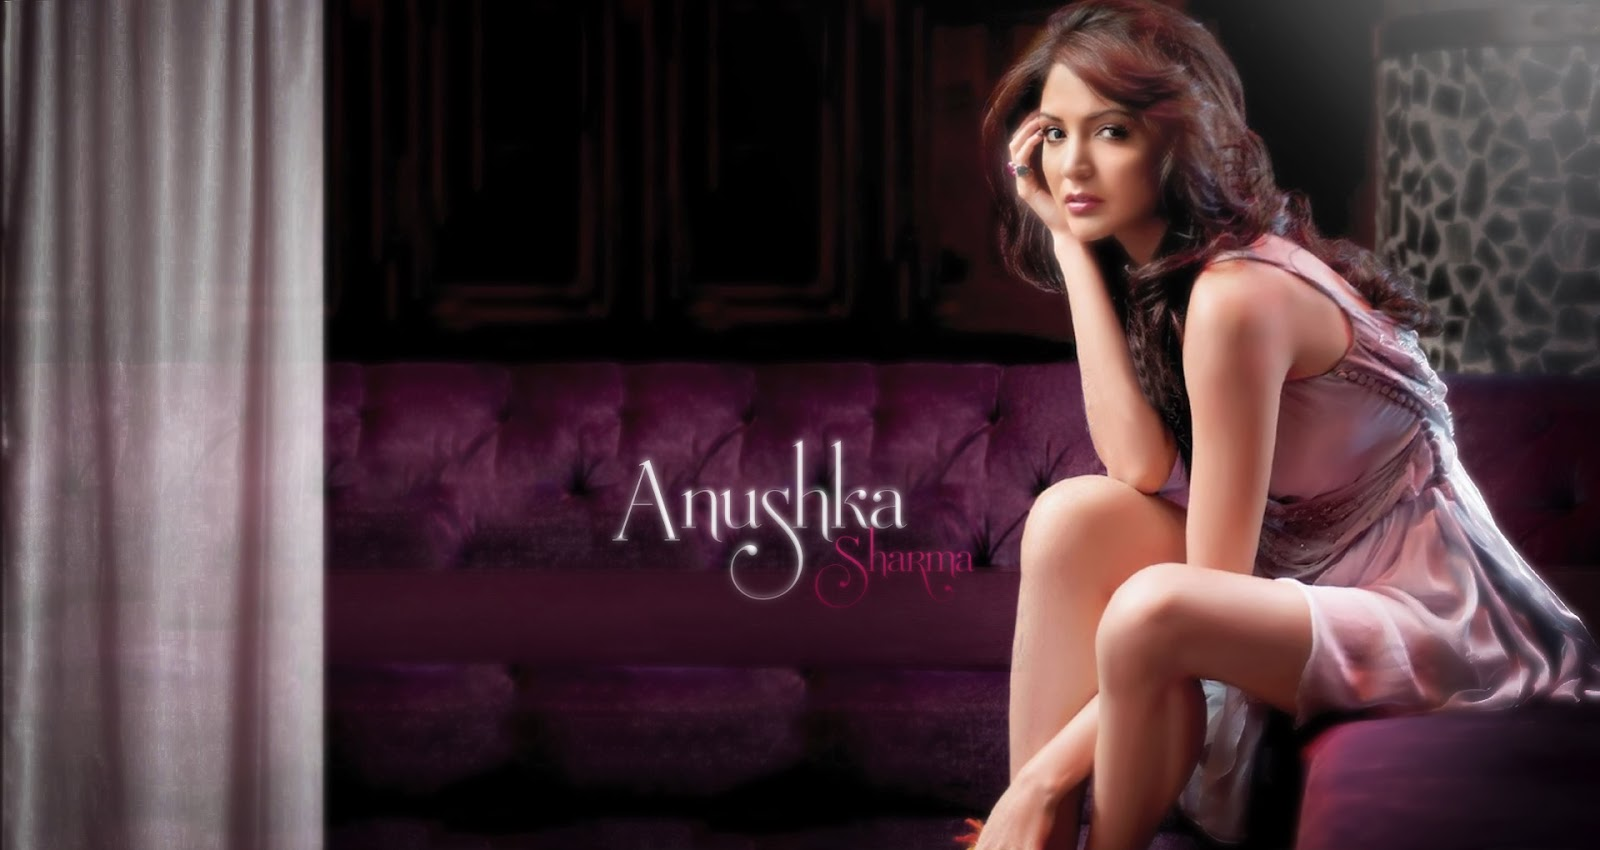 Anushka Sharma Hot  Sexy Bikini Hd Wallpaper  Images -1781